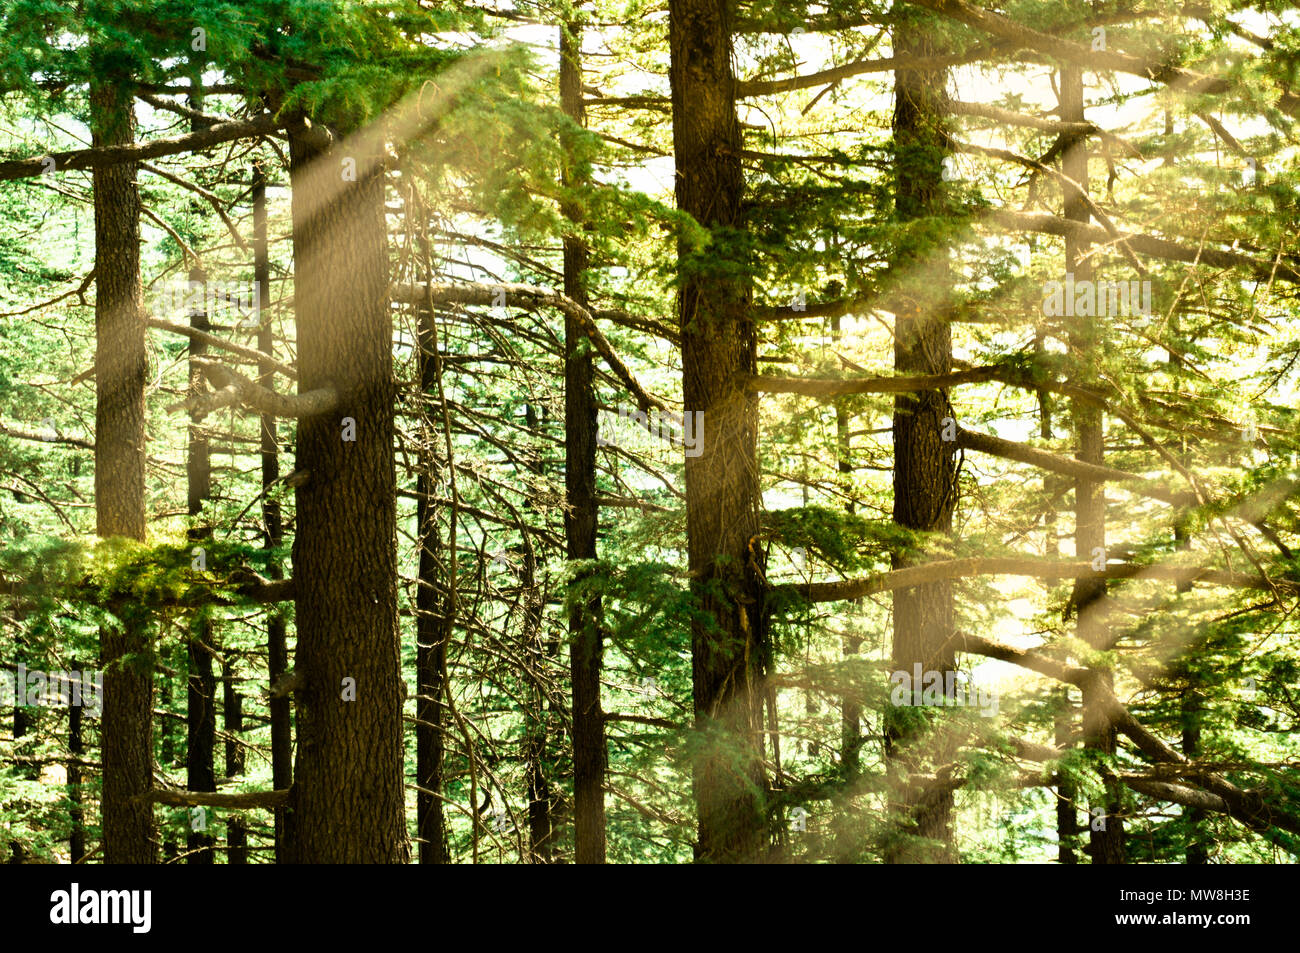 Dense pine trees with the golden morning sunset falling on the green leaves and trunks. Shot in shimla treks like this are a favorite for tourists - Stock Image